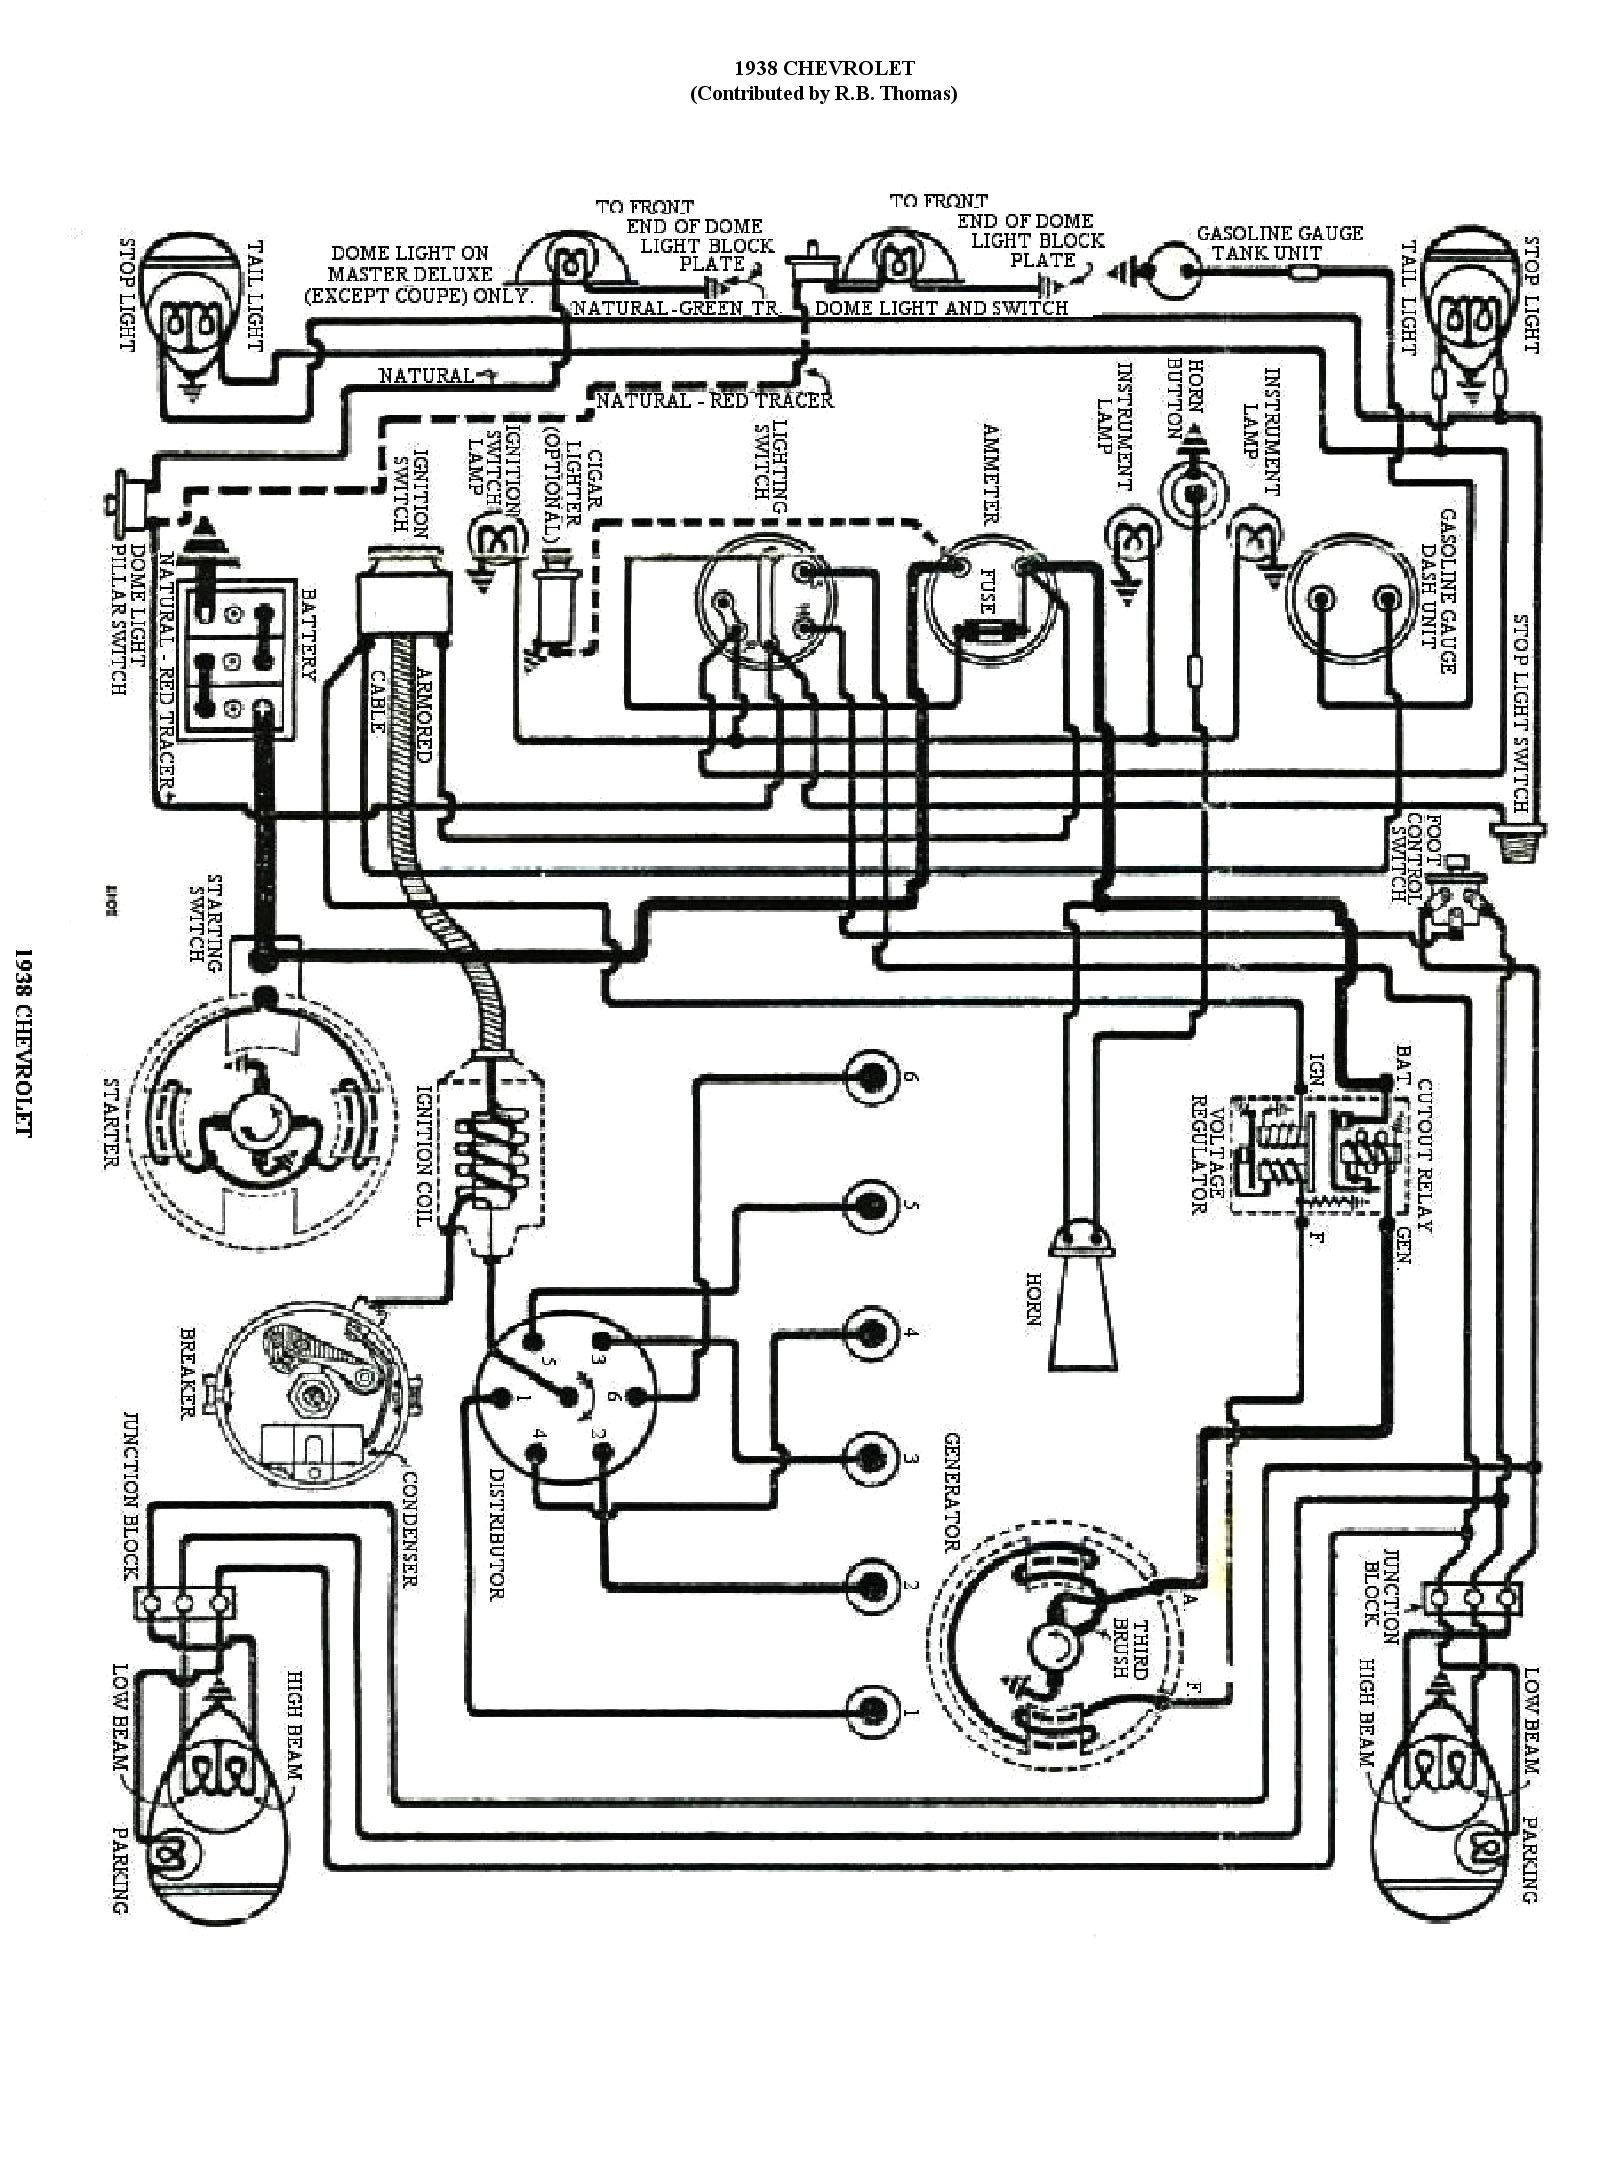 Chevy Wiring Diagrams Volkswagen 6 Volt Generator Diagram 1938